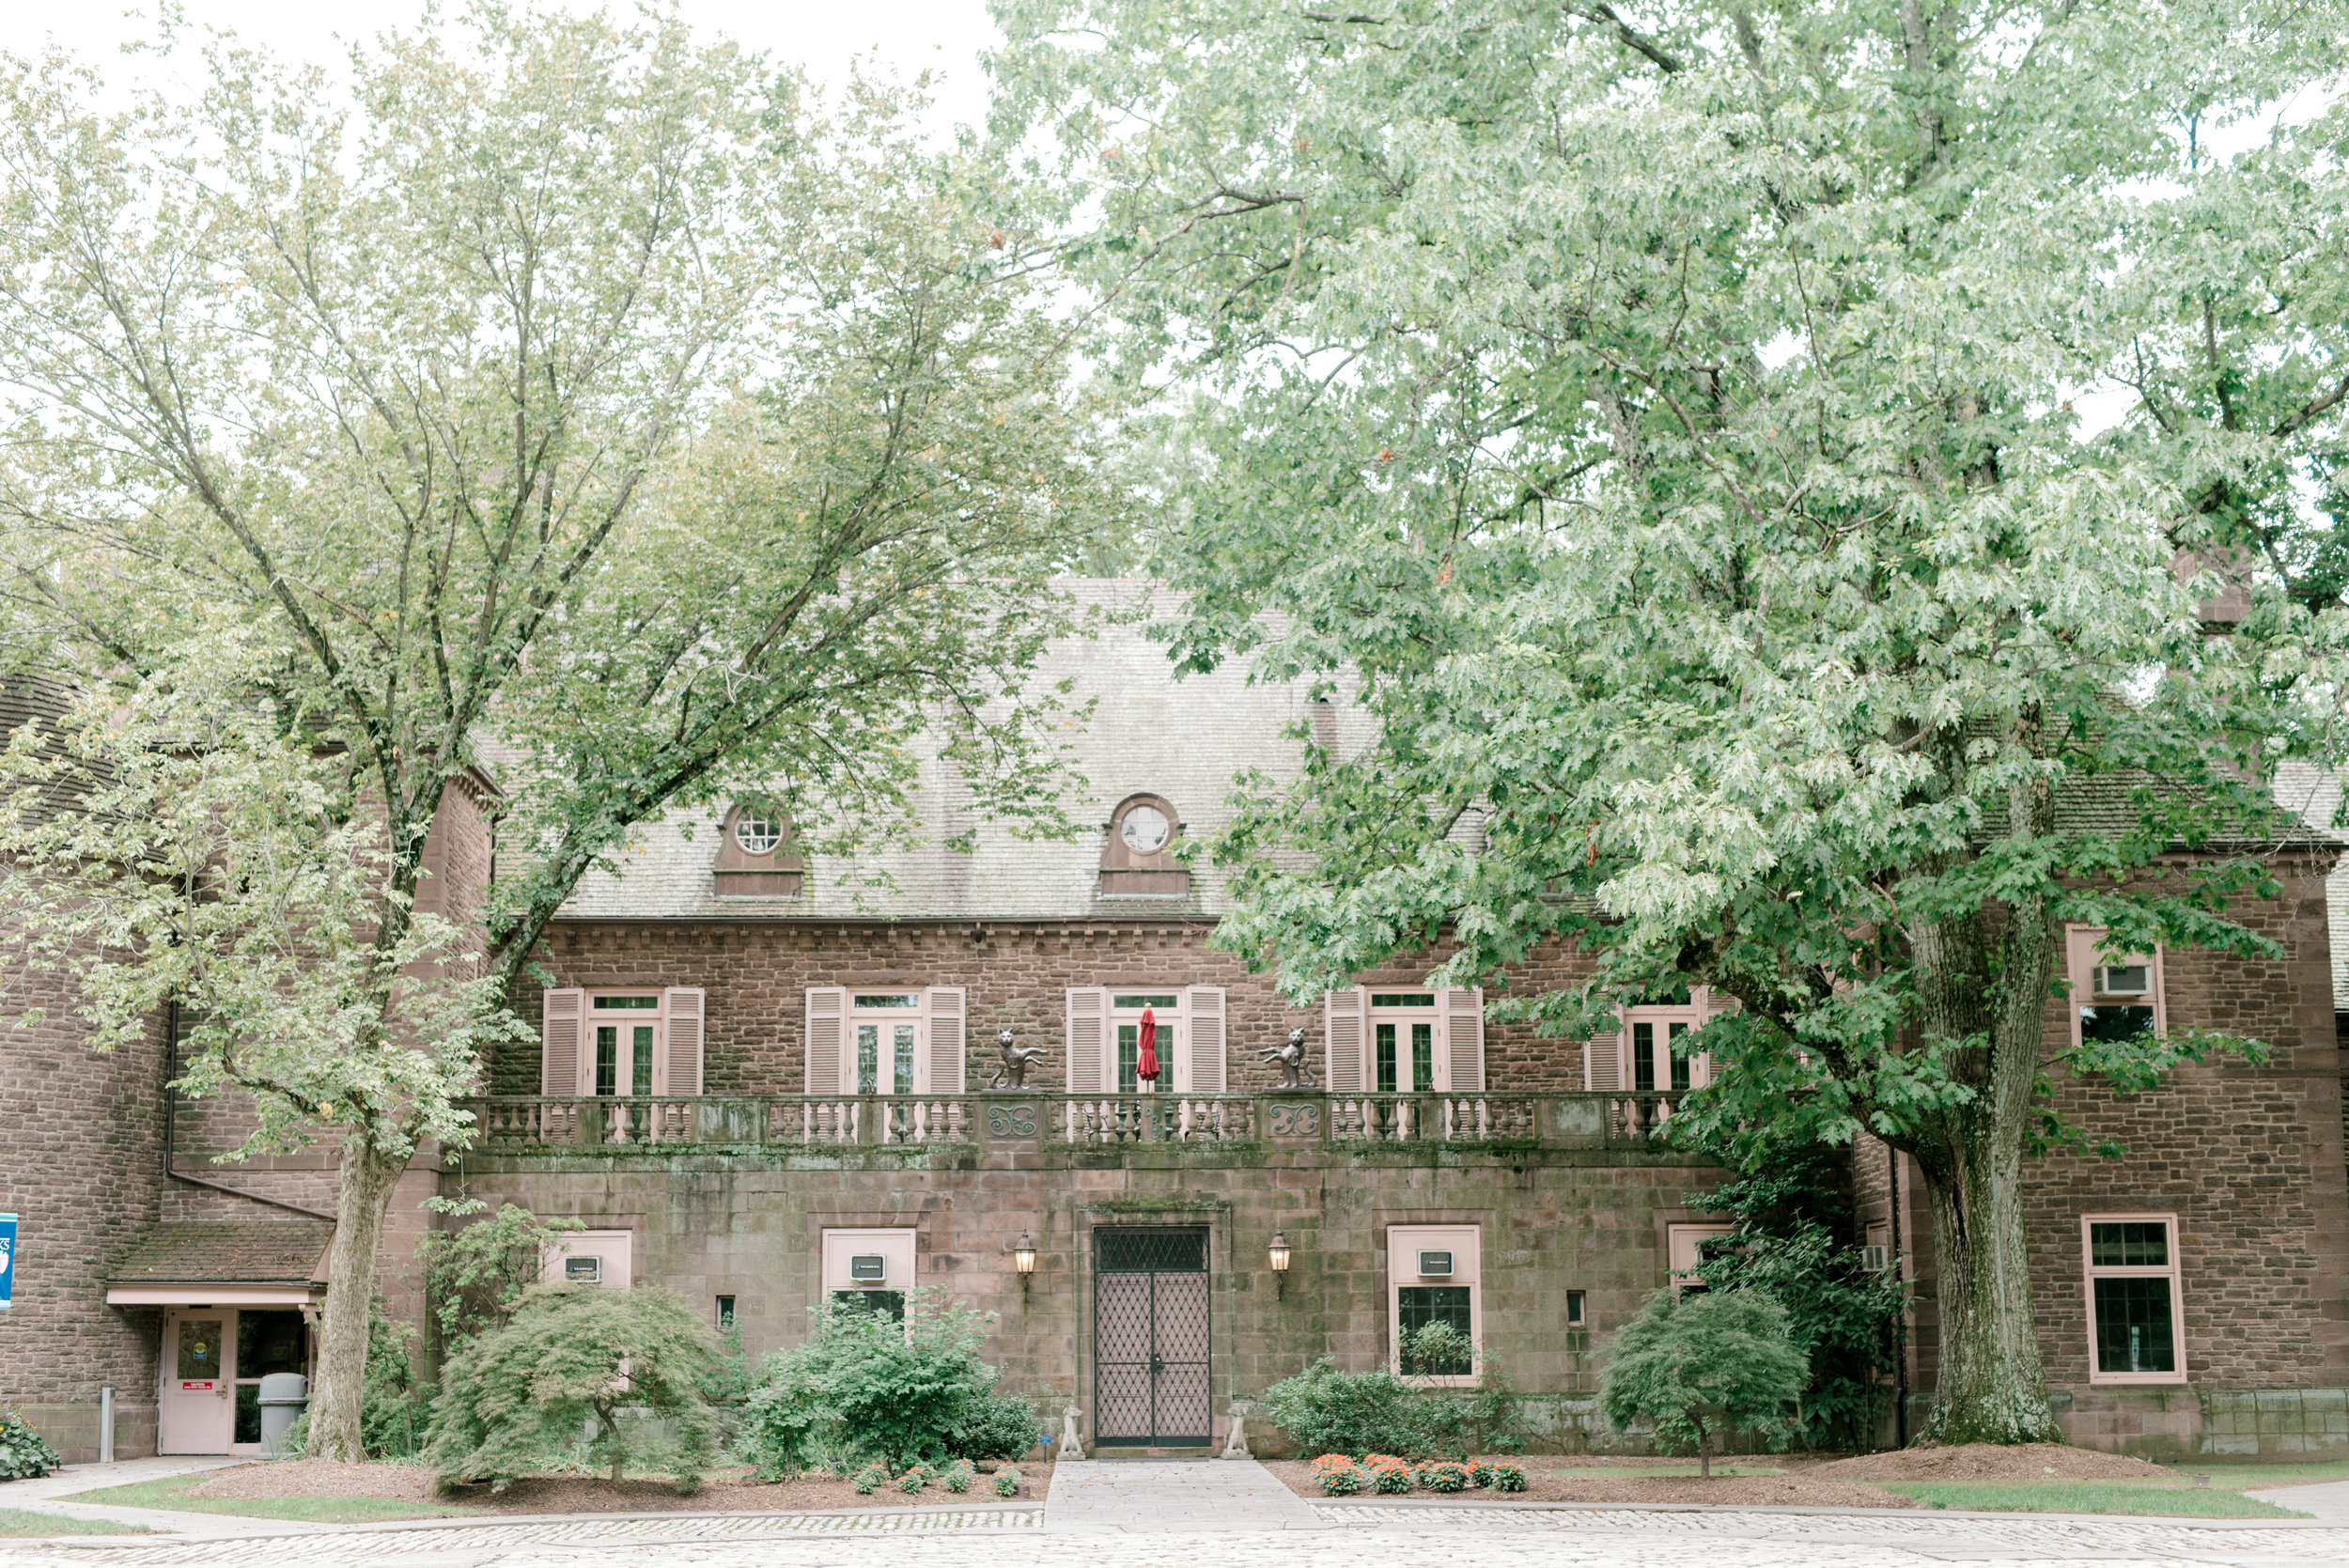 We're still blown away by the old stone architecture from this bright boho chic Tyler Gardens wedding in Bucks County